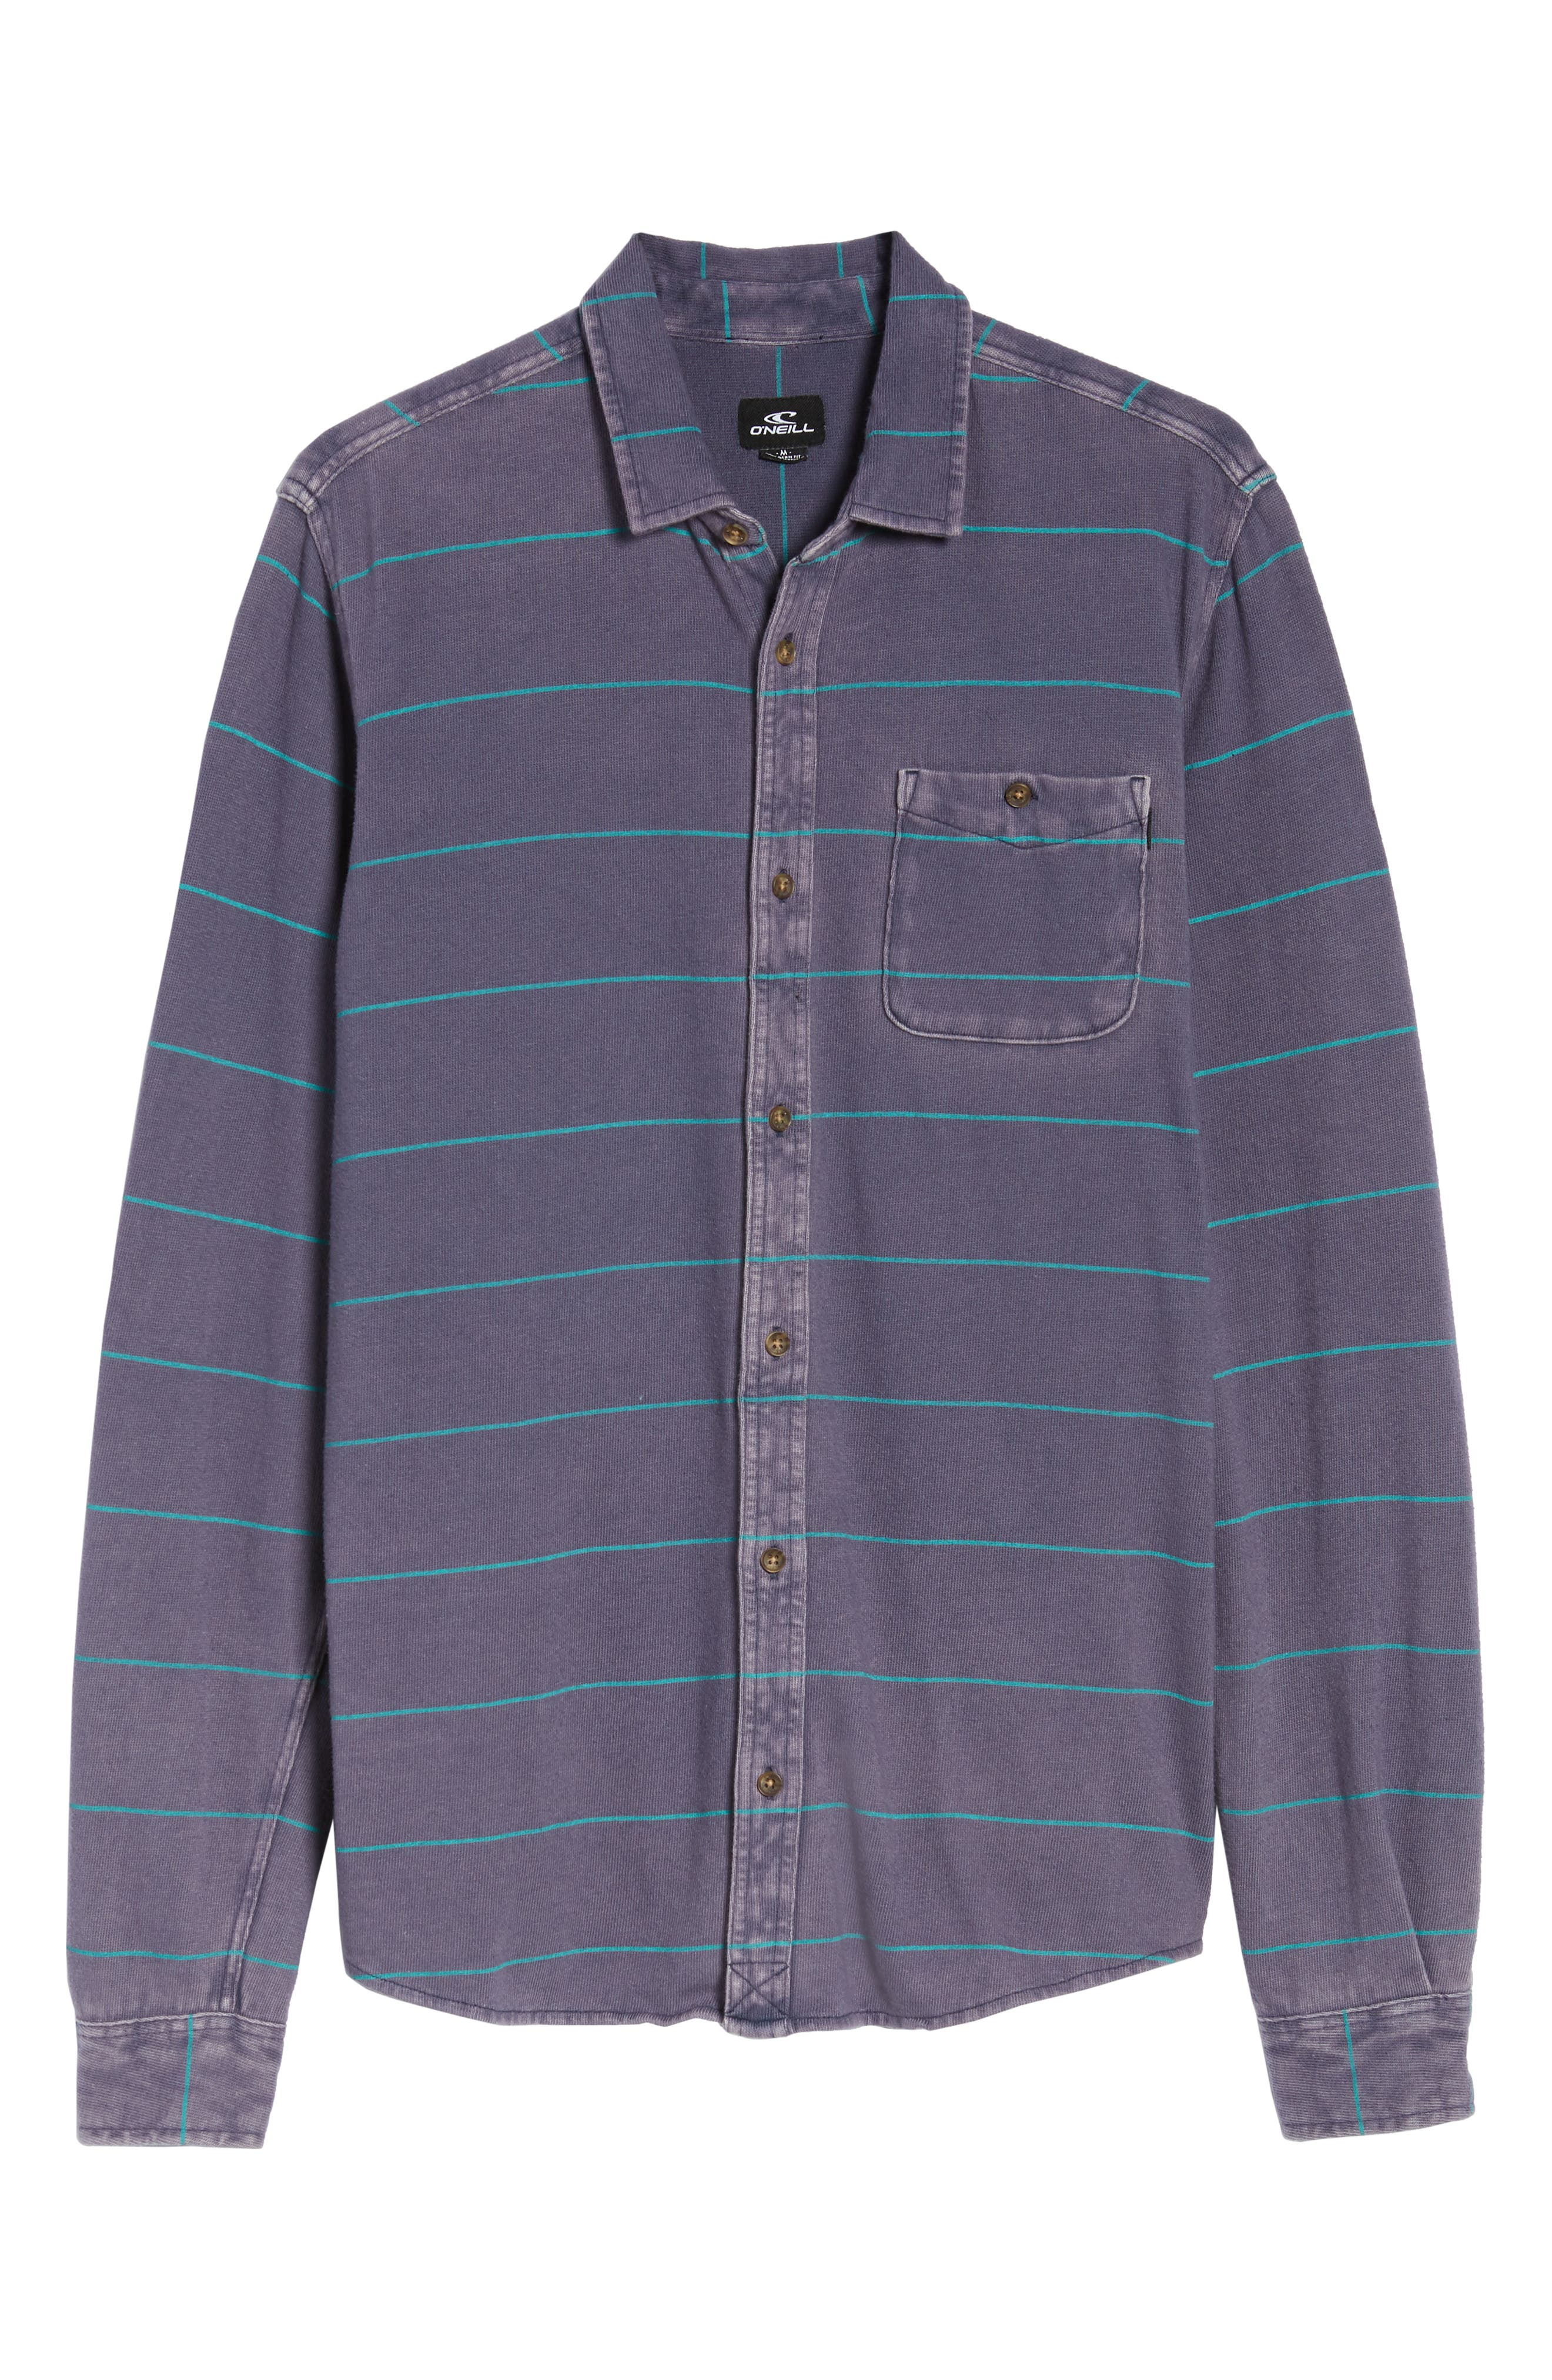 Cowell Knit Button-Up Shirt,                             Alternate thumbnail 6, color,                             NAVY